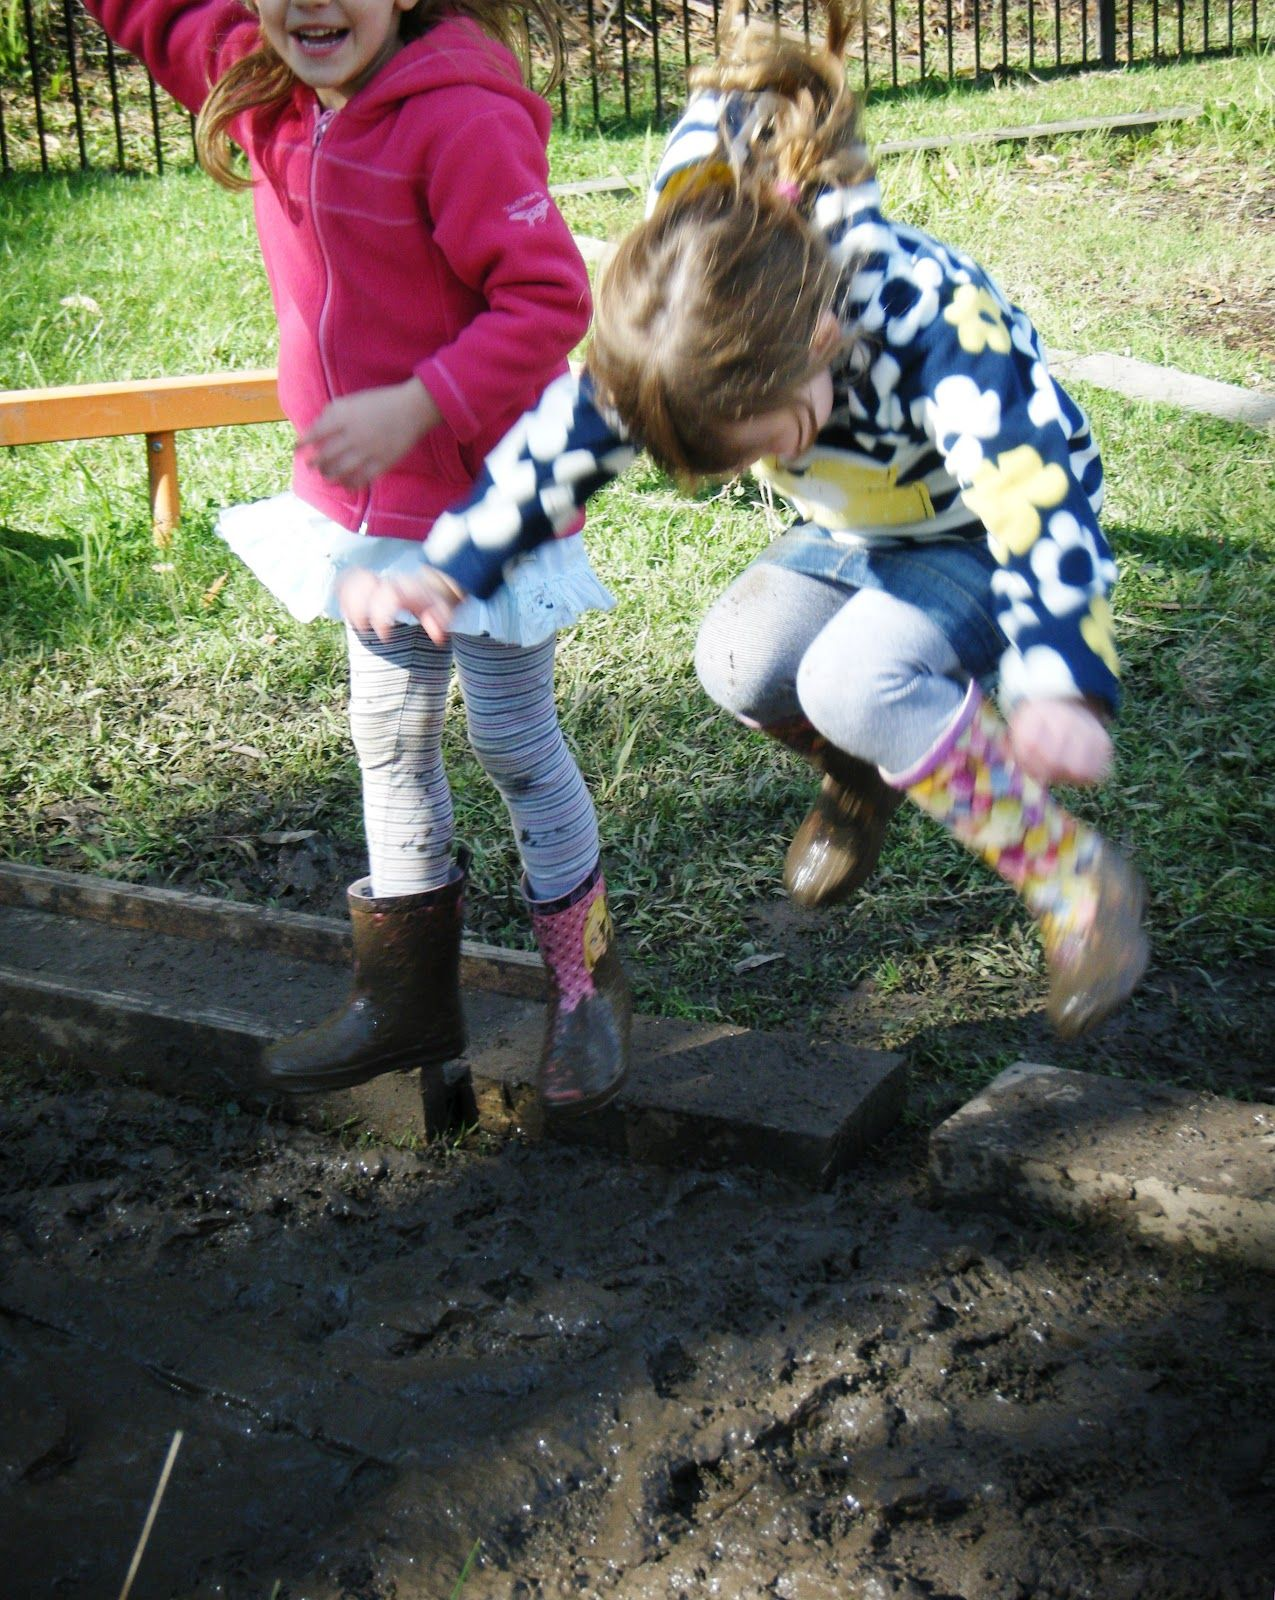 The Perks Of Play In Mud Educational >> People Playing In The Mud Google Search Mud Kids Playing